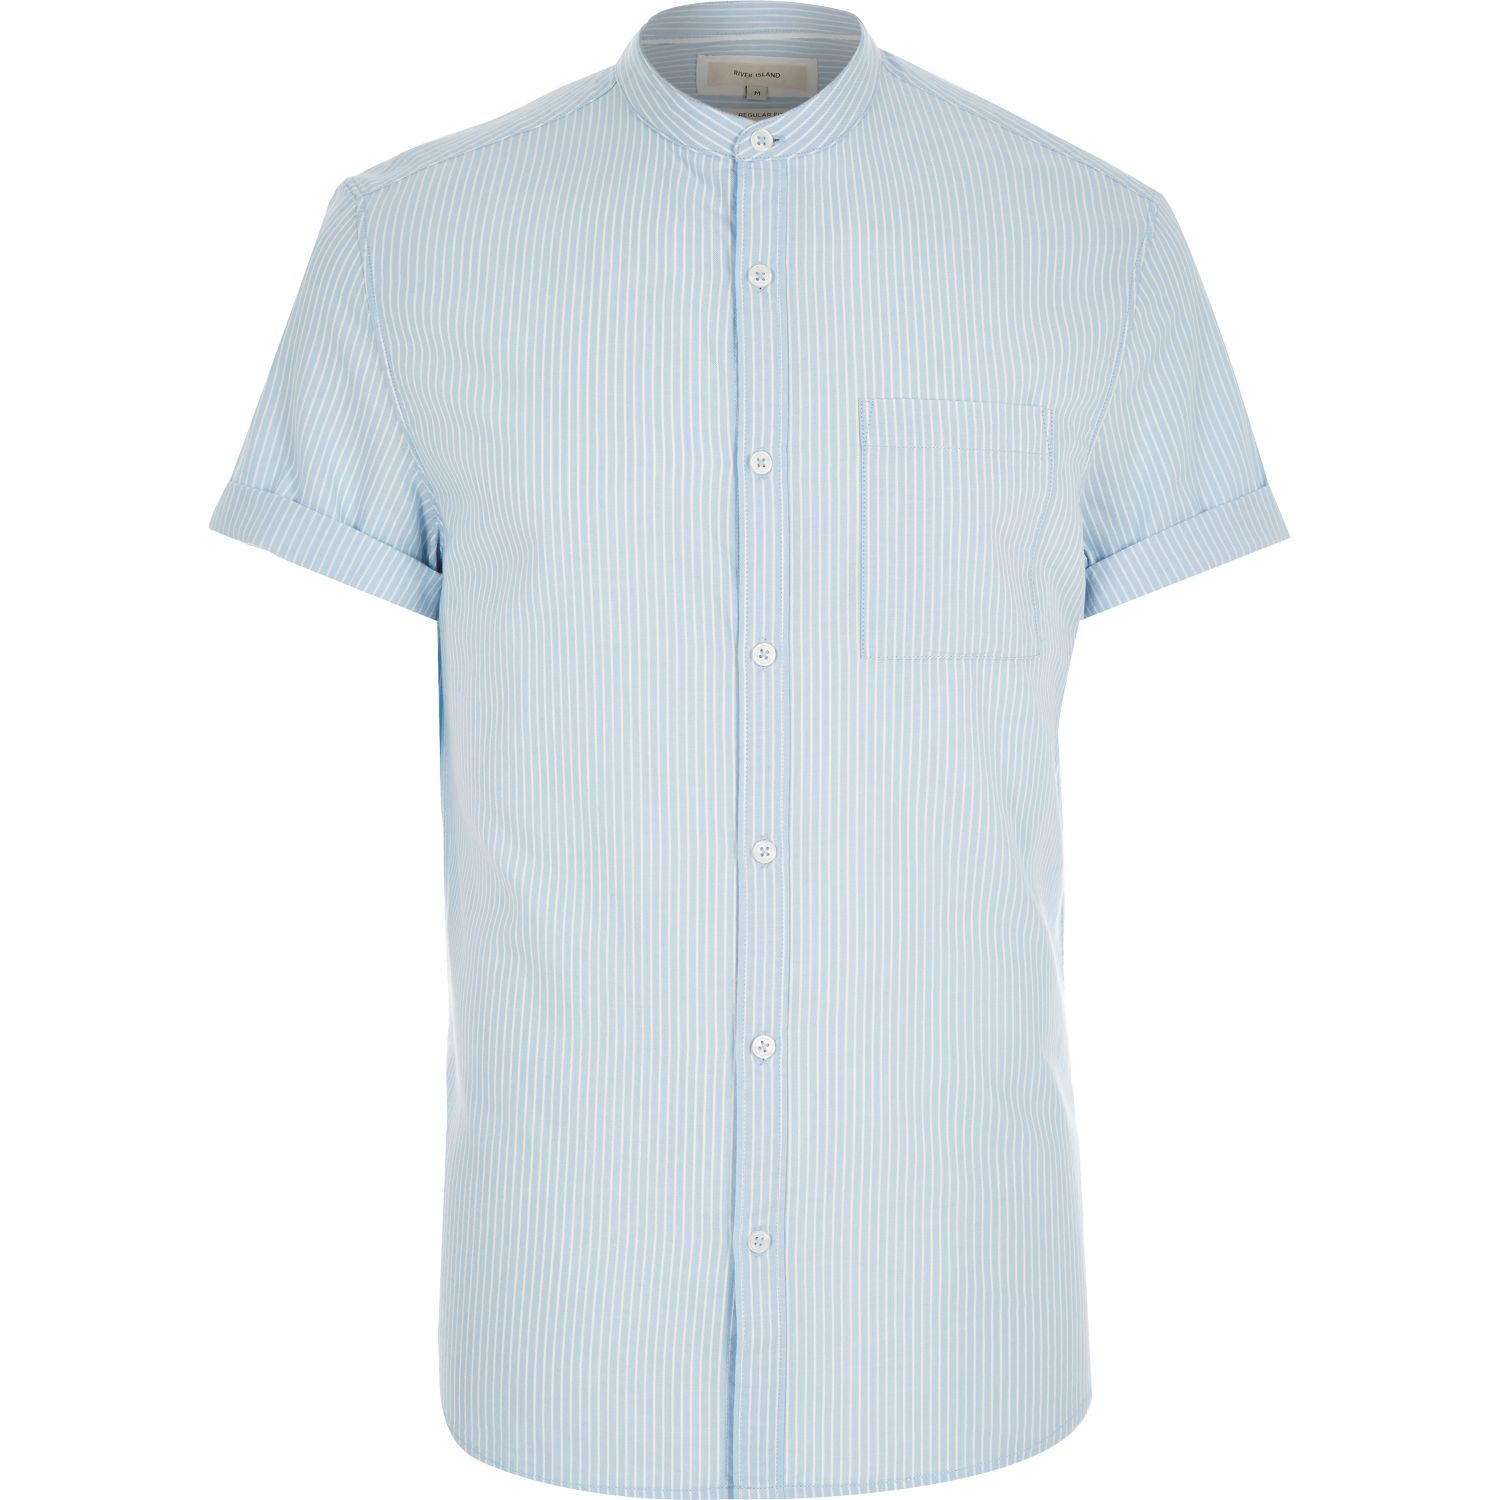 River island blue stripe short sleeve grandad shirt in for Short sleeve grandad shirt